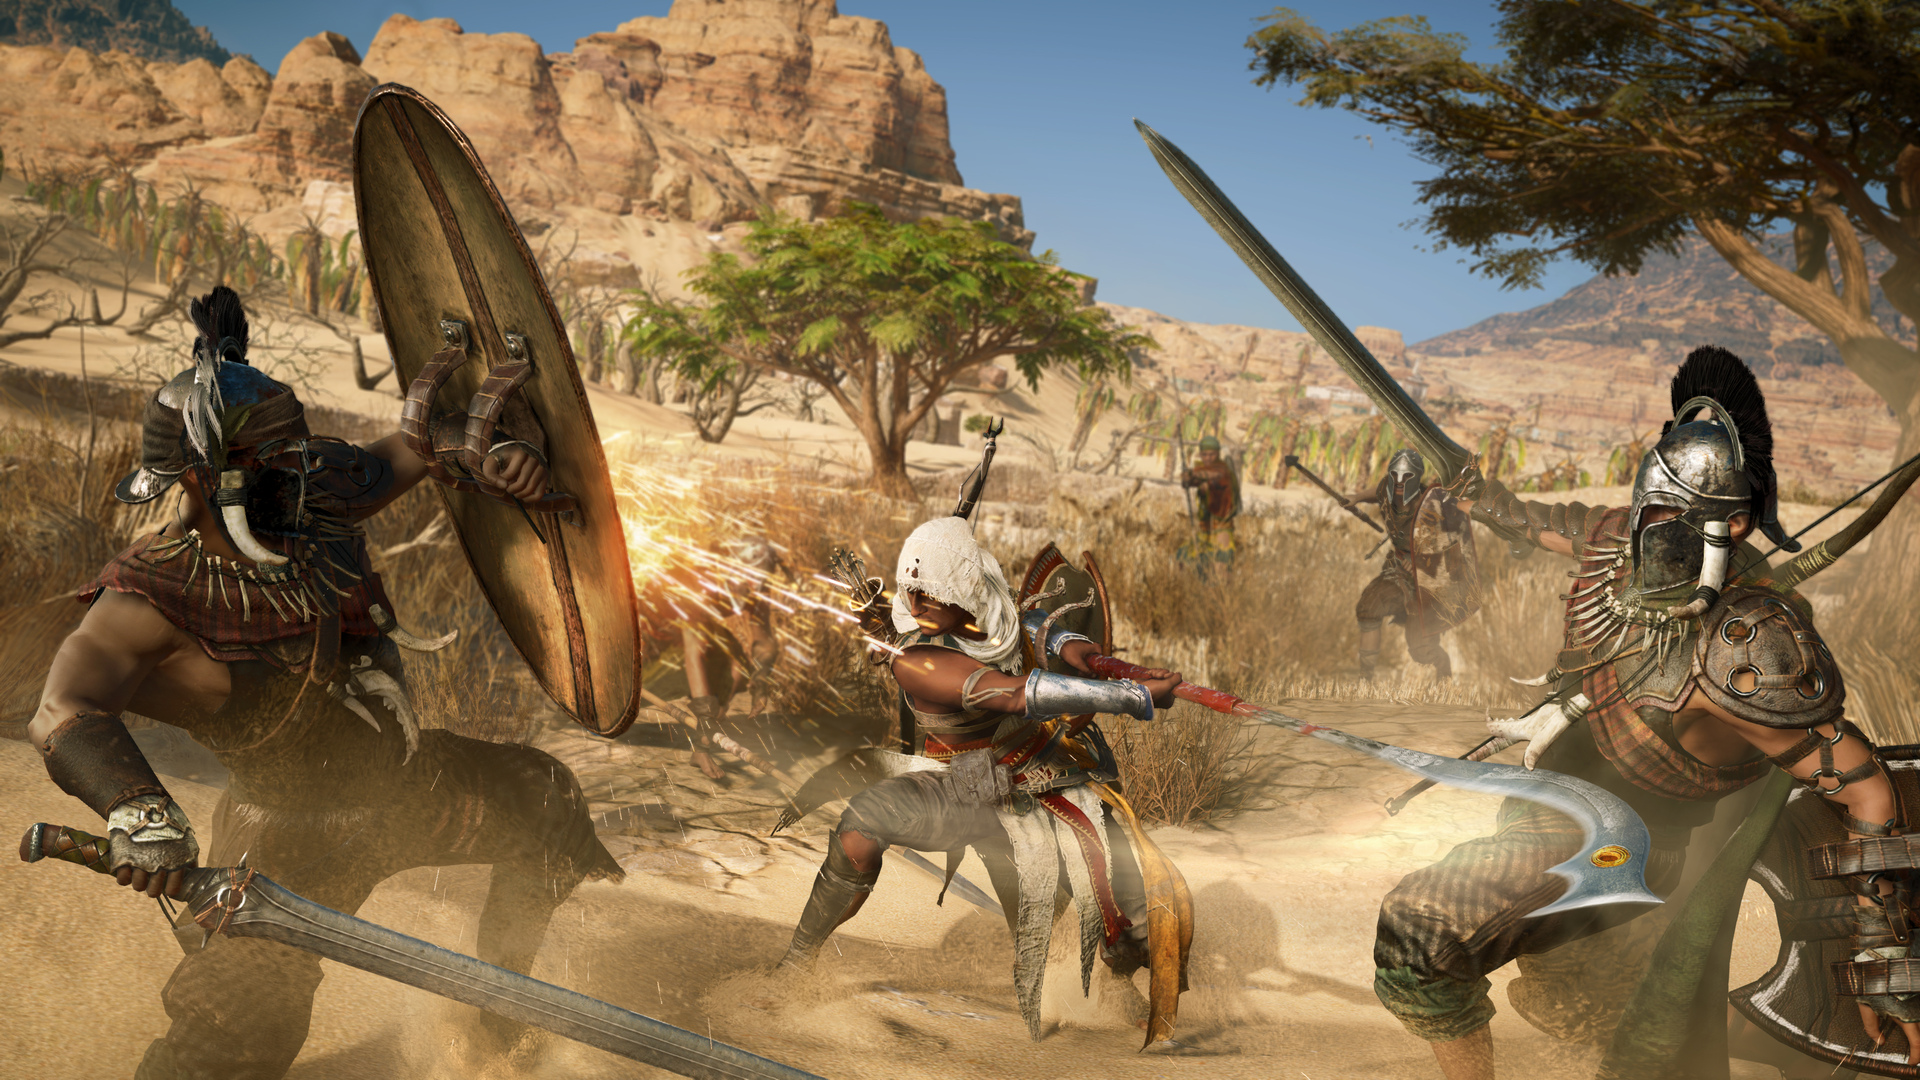 Показана боевая система Assassin's Creed Origins